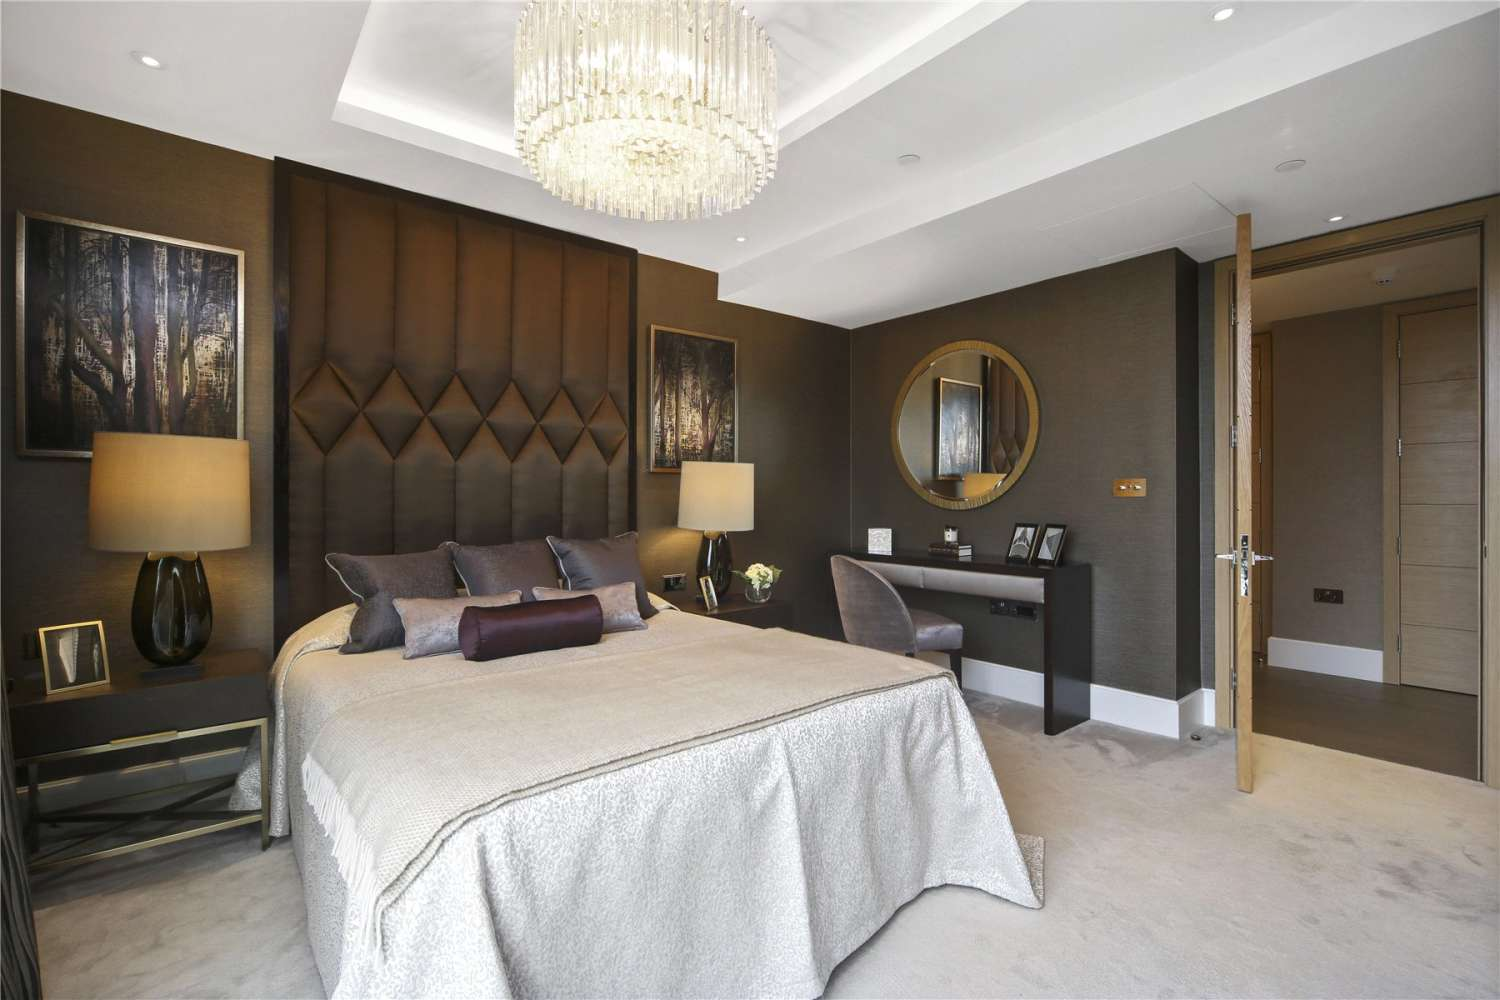 Apartment Kensington, W14 - Benson House 7 Radnor Terrace Kensington London - 08